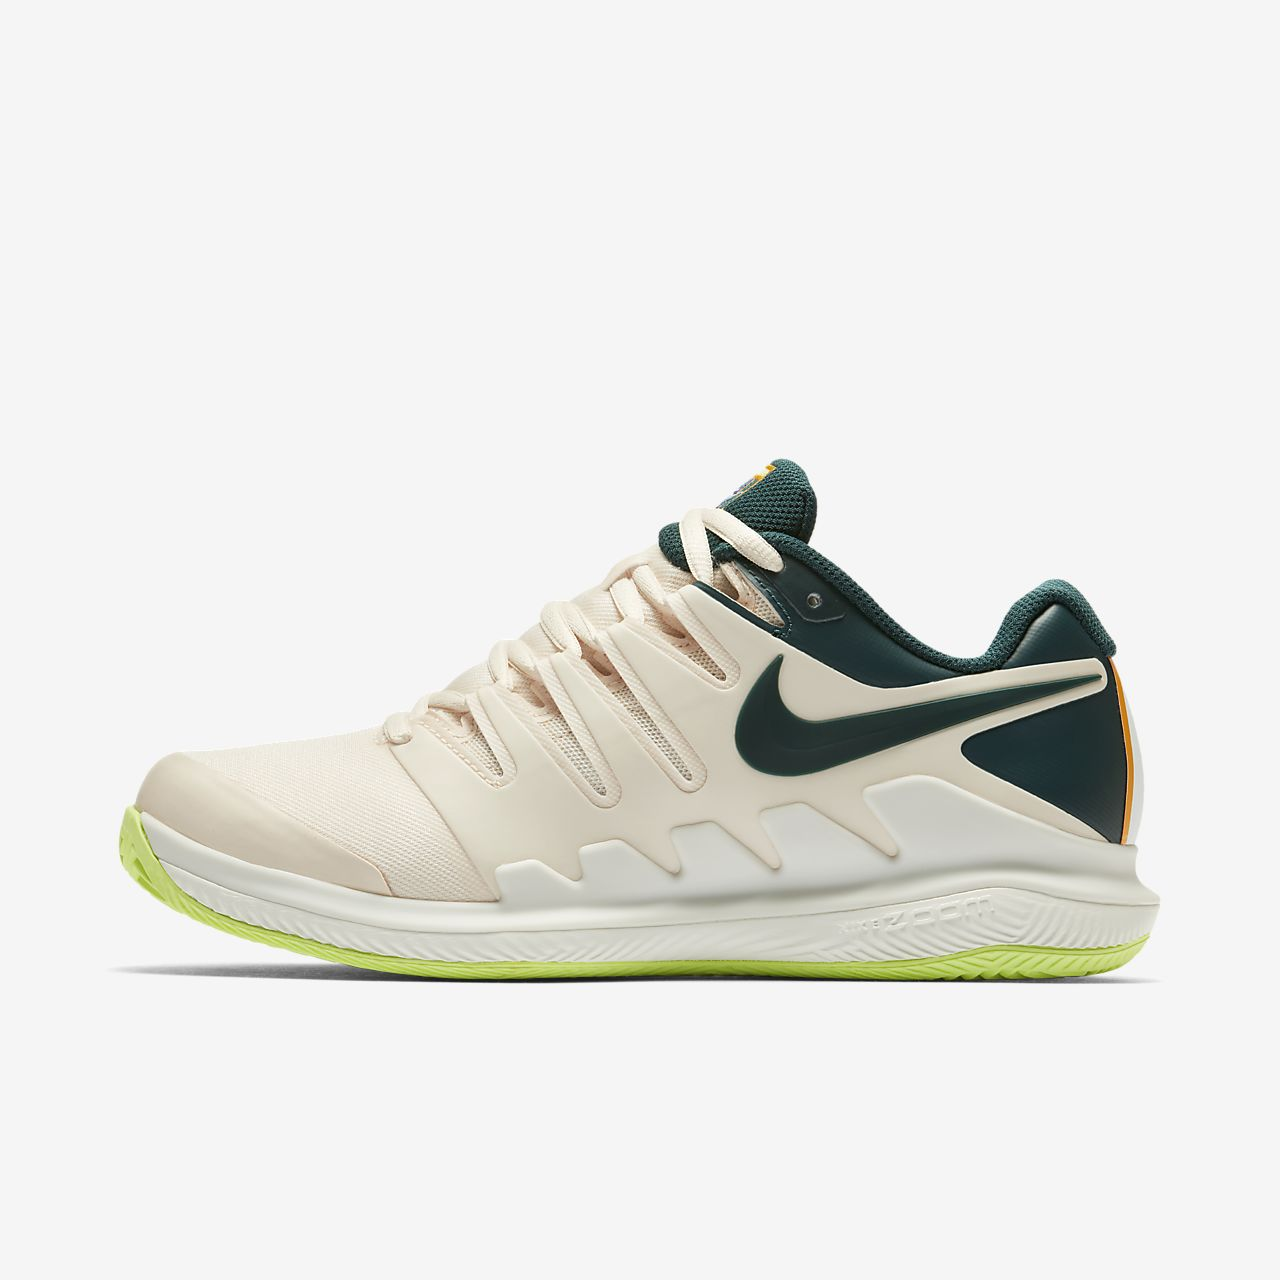 finest selection 74794 8ff9b Nike Air Zoom Vapor X Clay